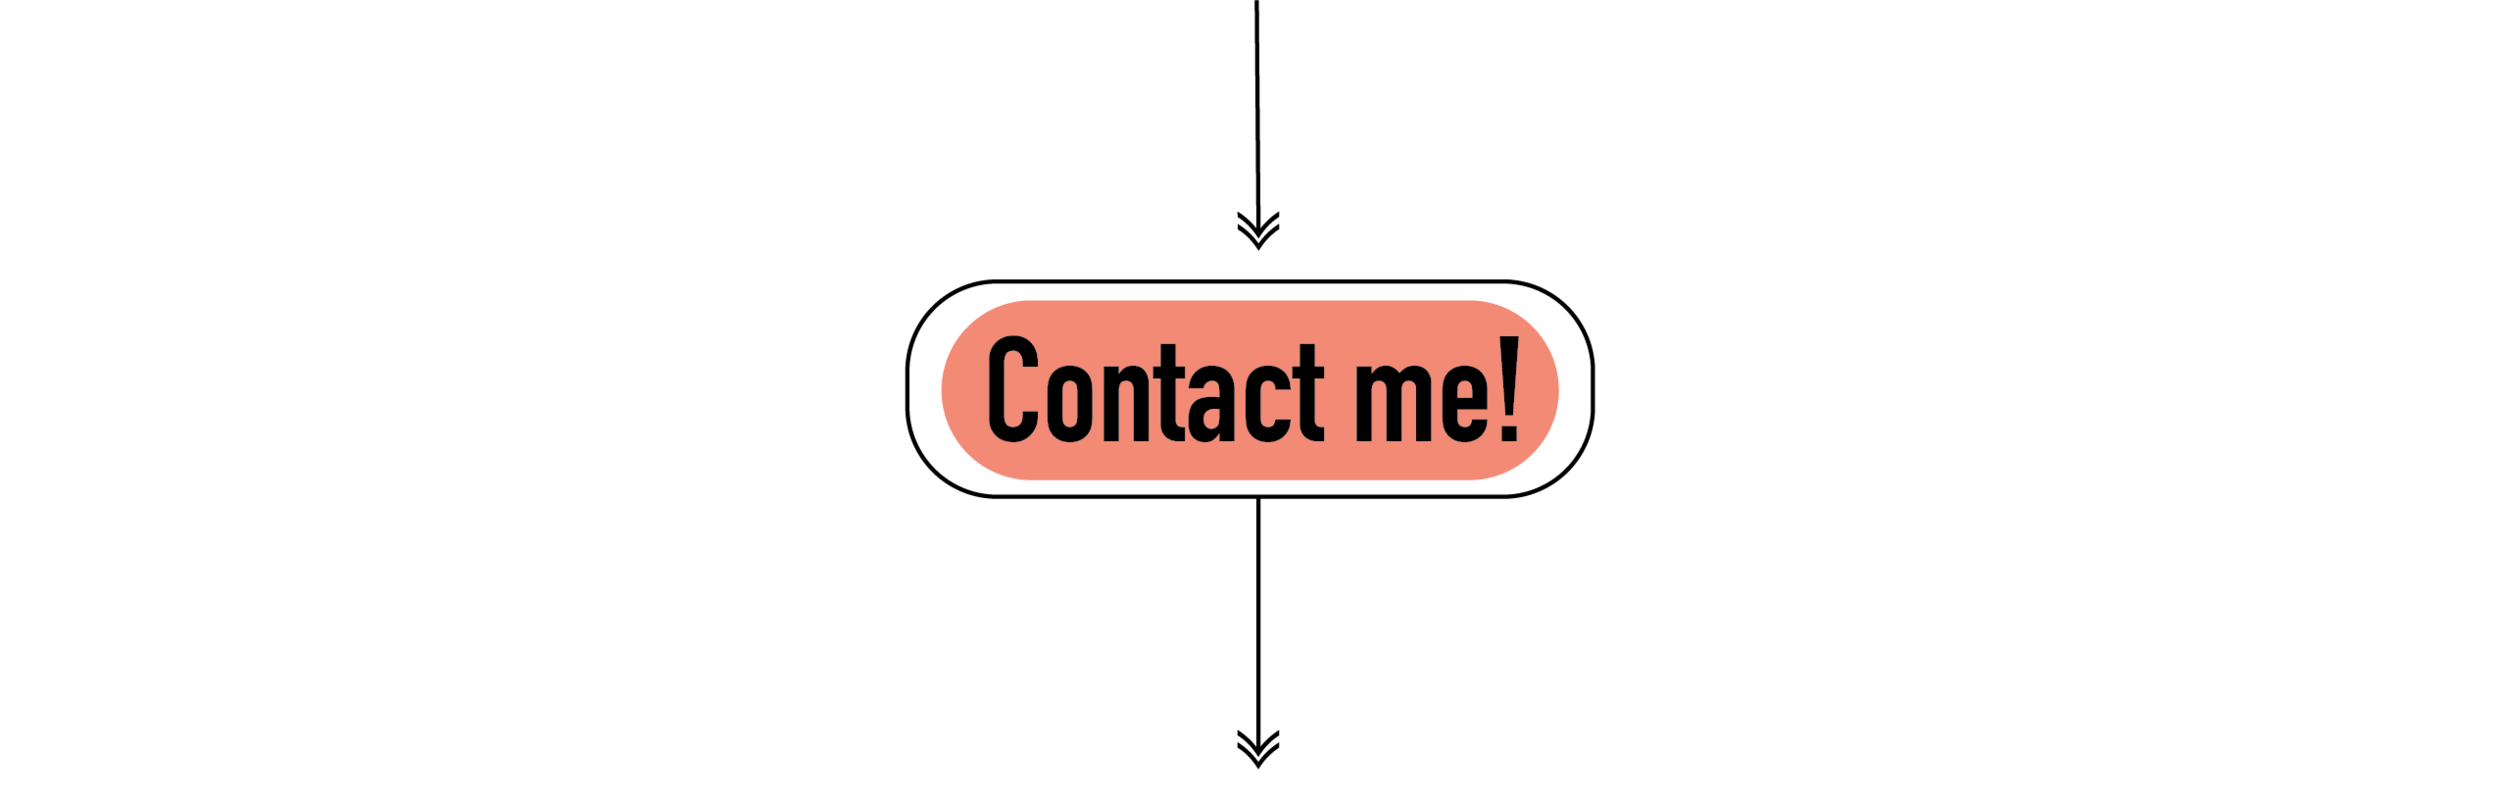 About_Final contact me.png